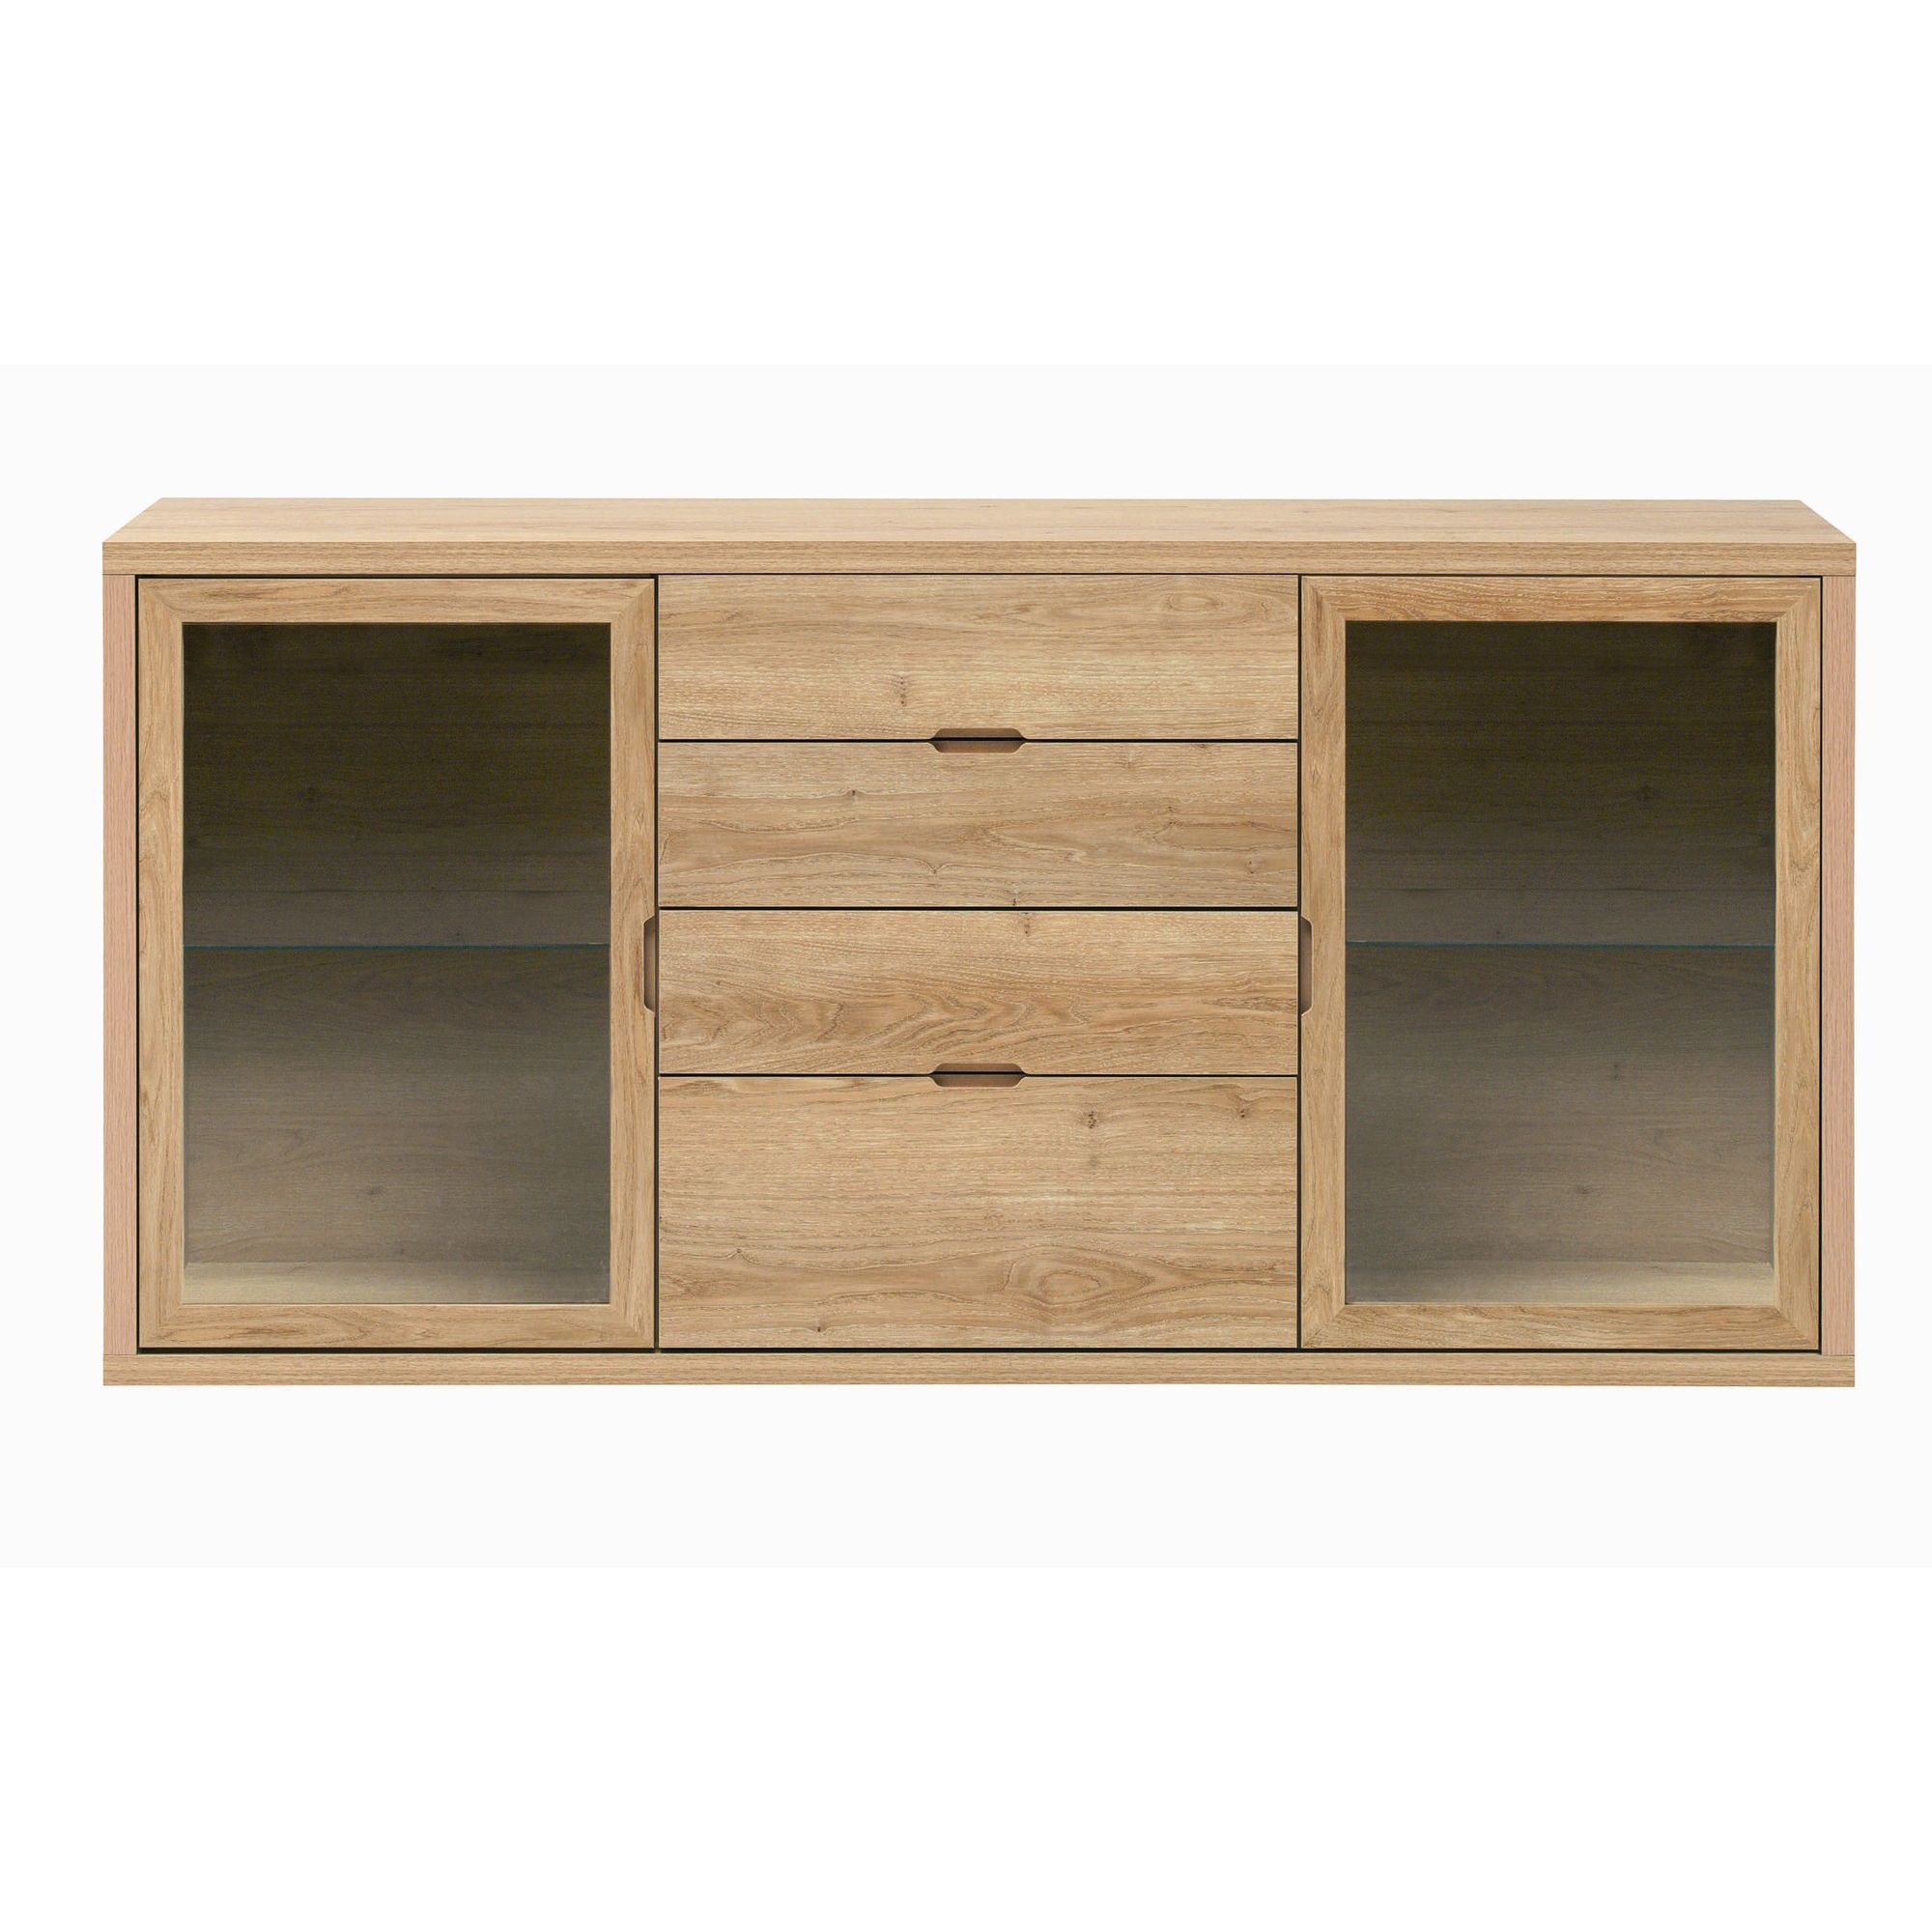 Caxton Darwin 2 Glazed Door / 4 Drawer Sideboard in Chestnut at Tesco Direct